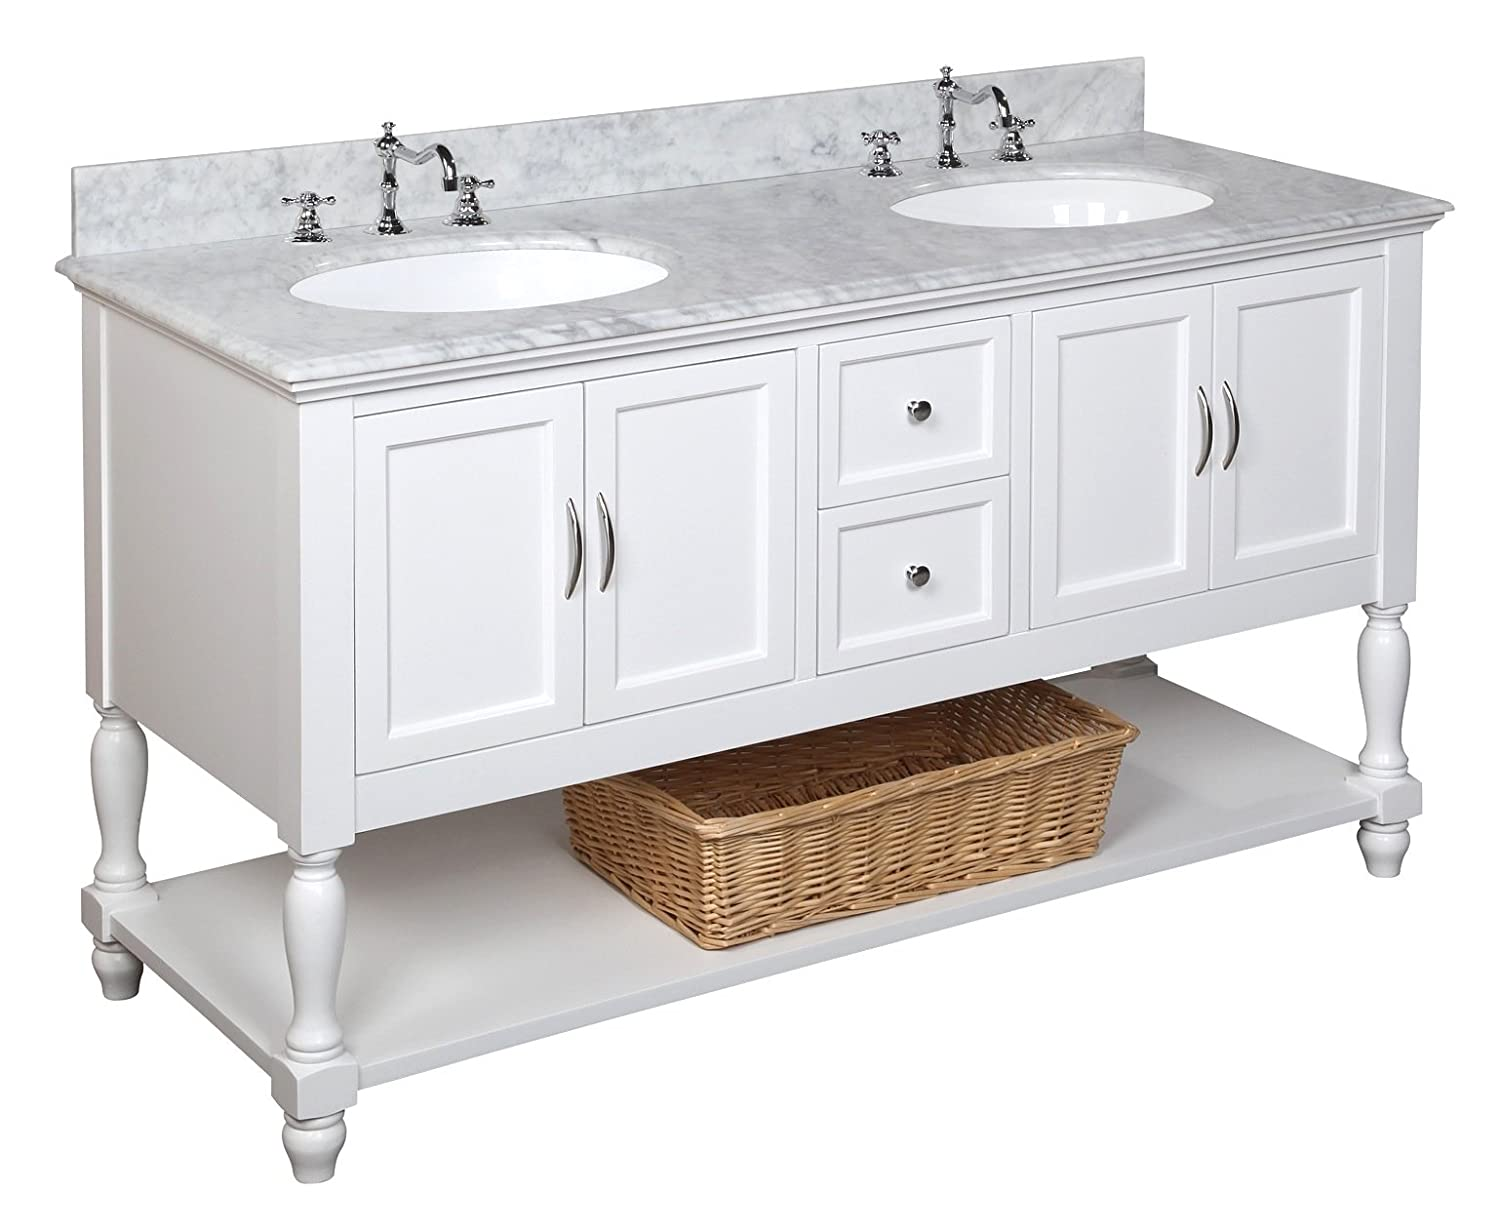 60 white bathroom vanity -  Double Sink Bathroom Vanity With Marble Countertop Cabinet With Soft Close Function And Undermount Ceramic Sink Carrara White 60 Amazon Com